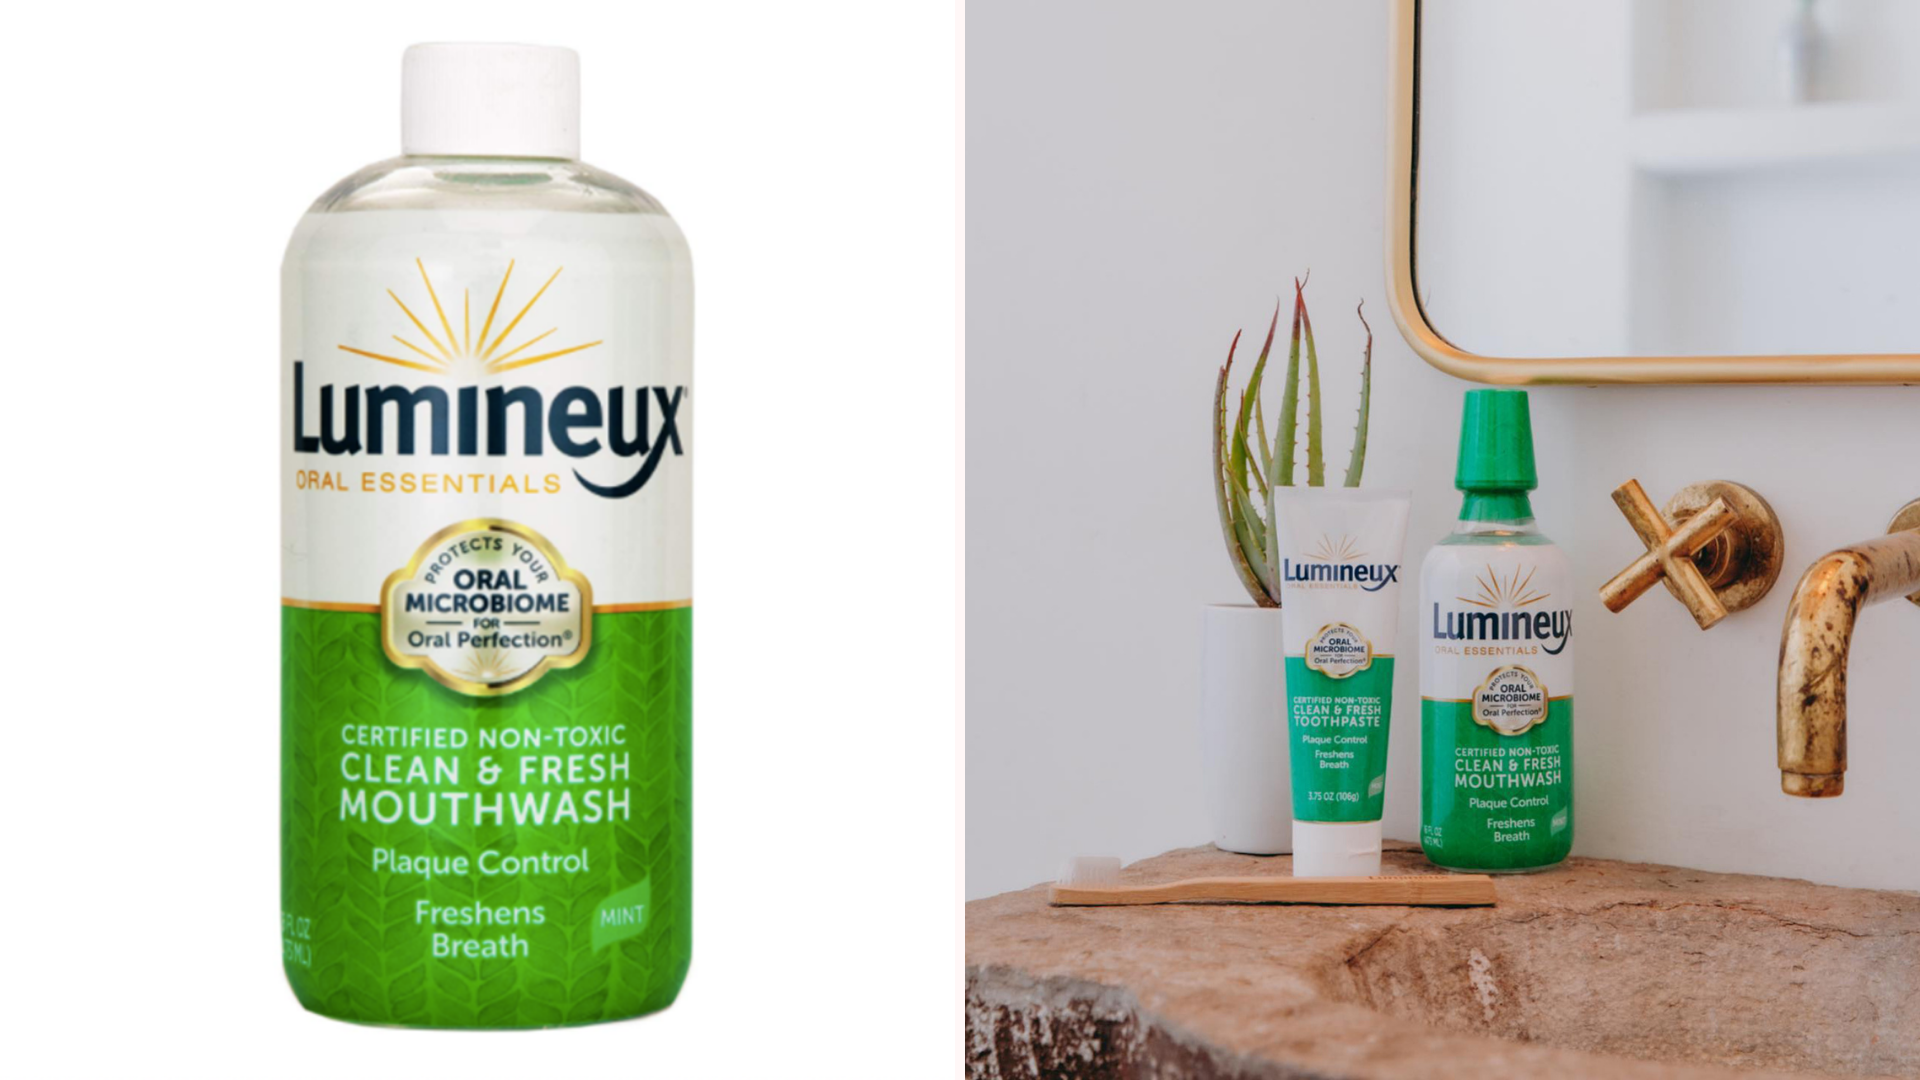 A product shot of a bottle of Luminous Oral Essential mouthwash next to a photo of the same product standing next to a toothpaste by the same brand standing by the sink and a mirror, with a toothbrush laying in front of them, and a little plant behind, and with the water tap visible to there right